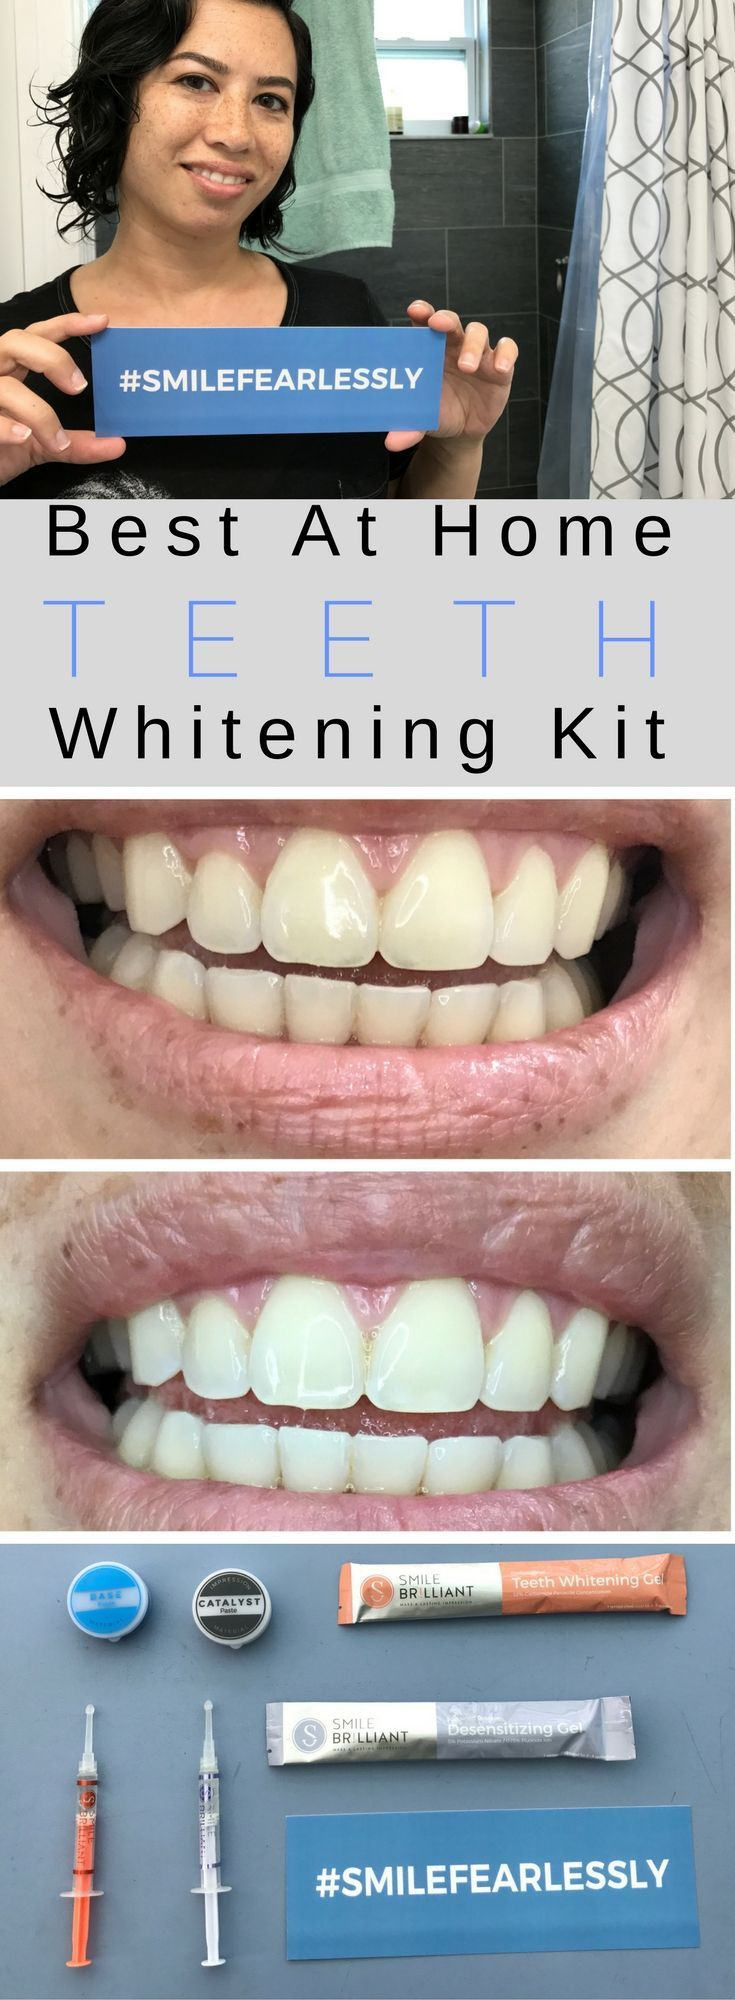 (AD) Want an easy to use system to whiten your teeth? Smile Brilliant is the best at home teeth whitening system. Custom trays ensure quick and easy brightening of your smile. Also, desensitizing gel helps for sensitive teeth that still need whitening. Affiliate link to a truly helpful product.